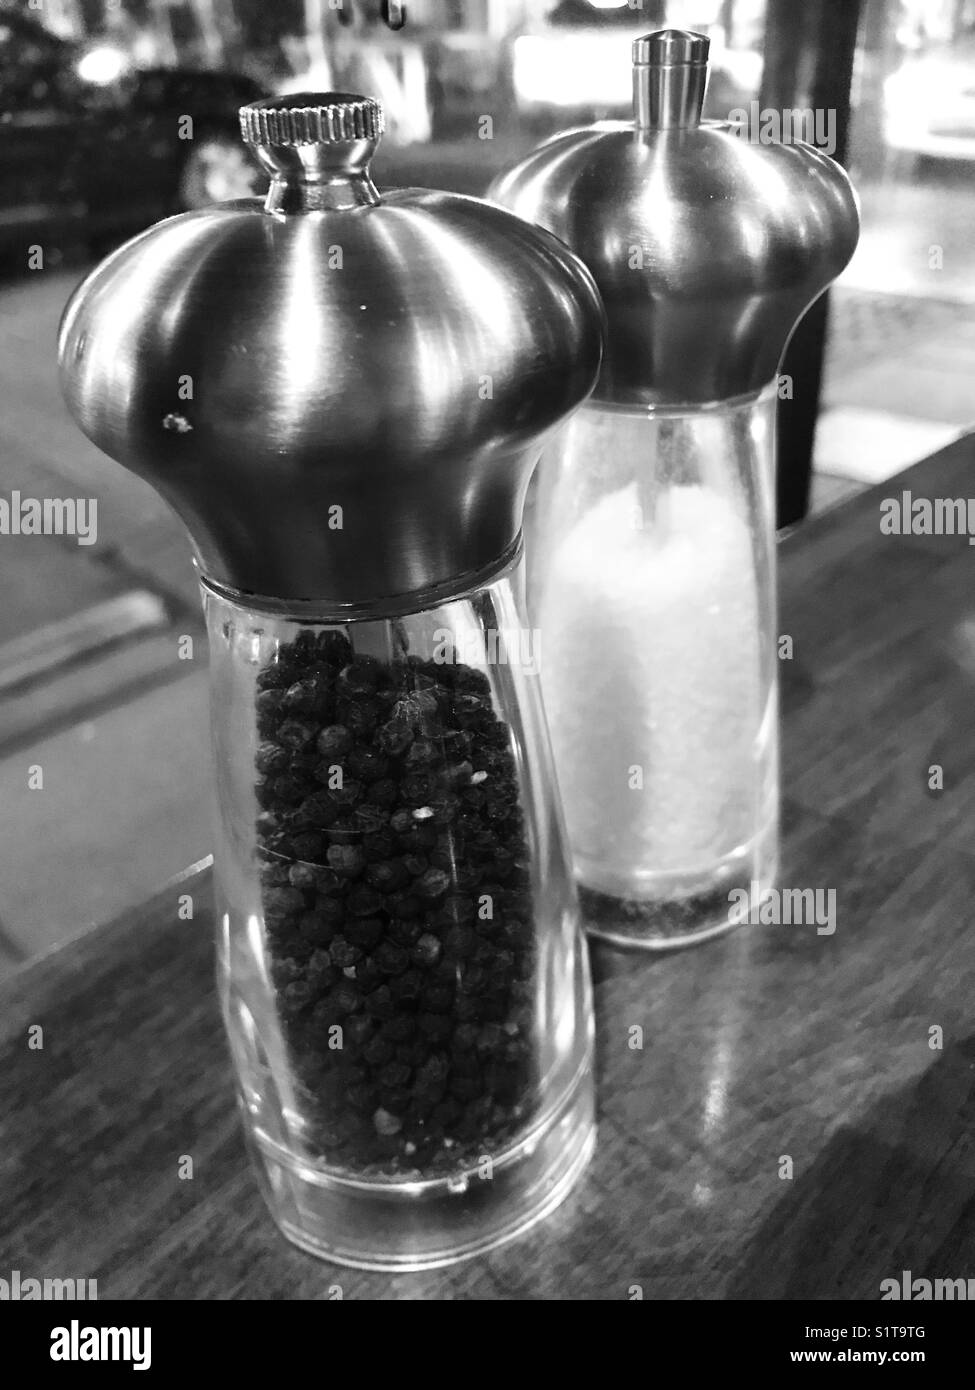 Salt and pepper mills in a restaurant window - Stock Image